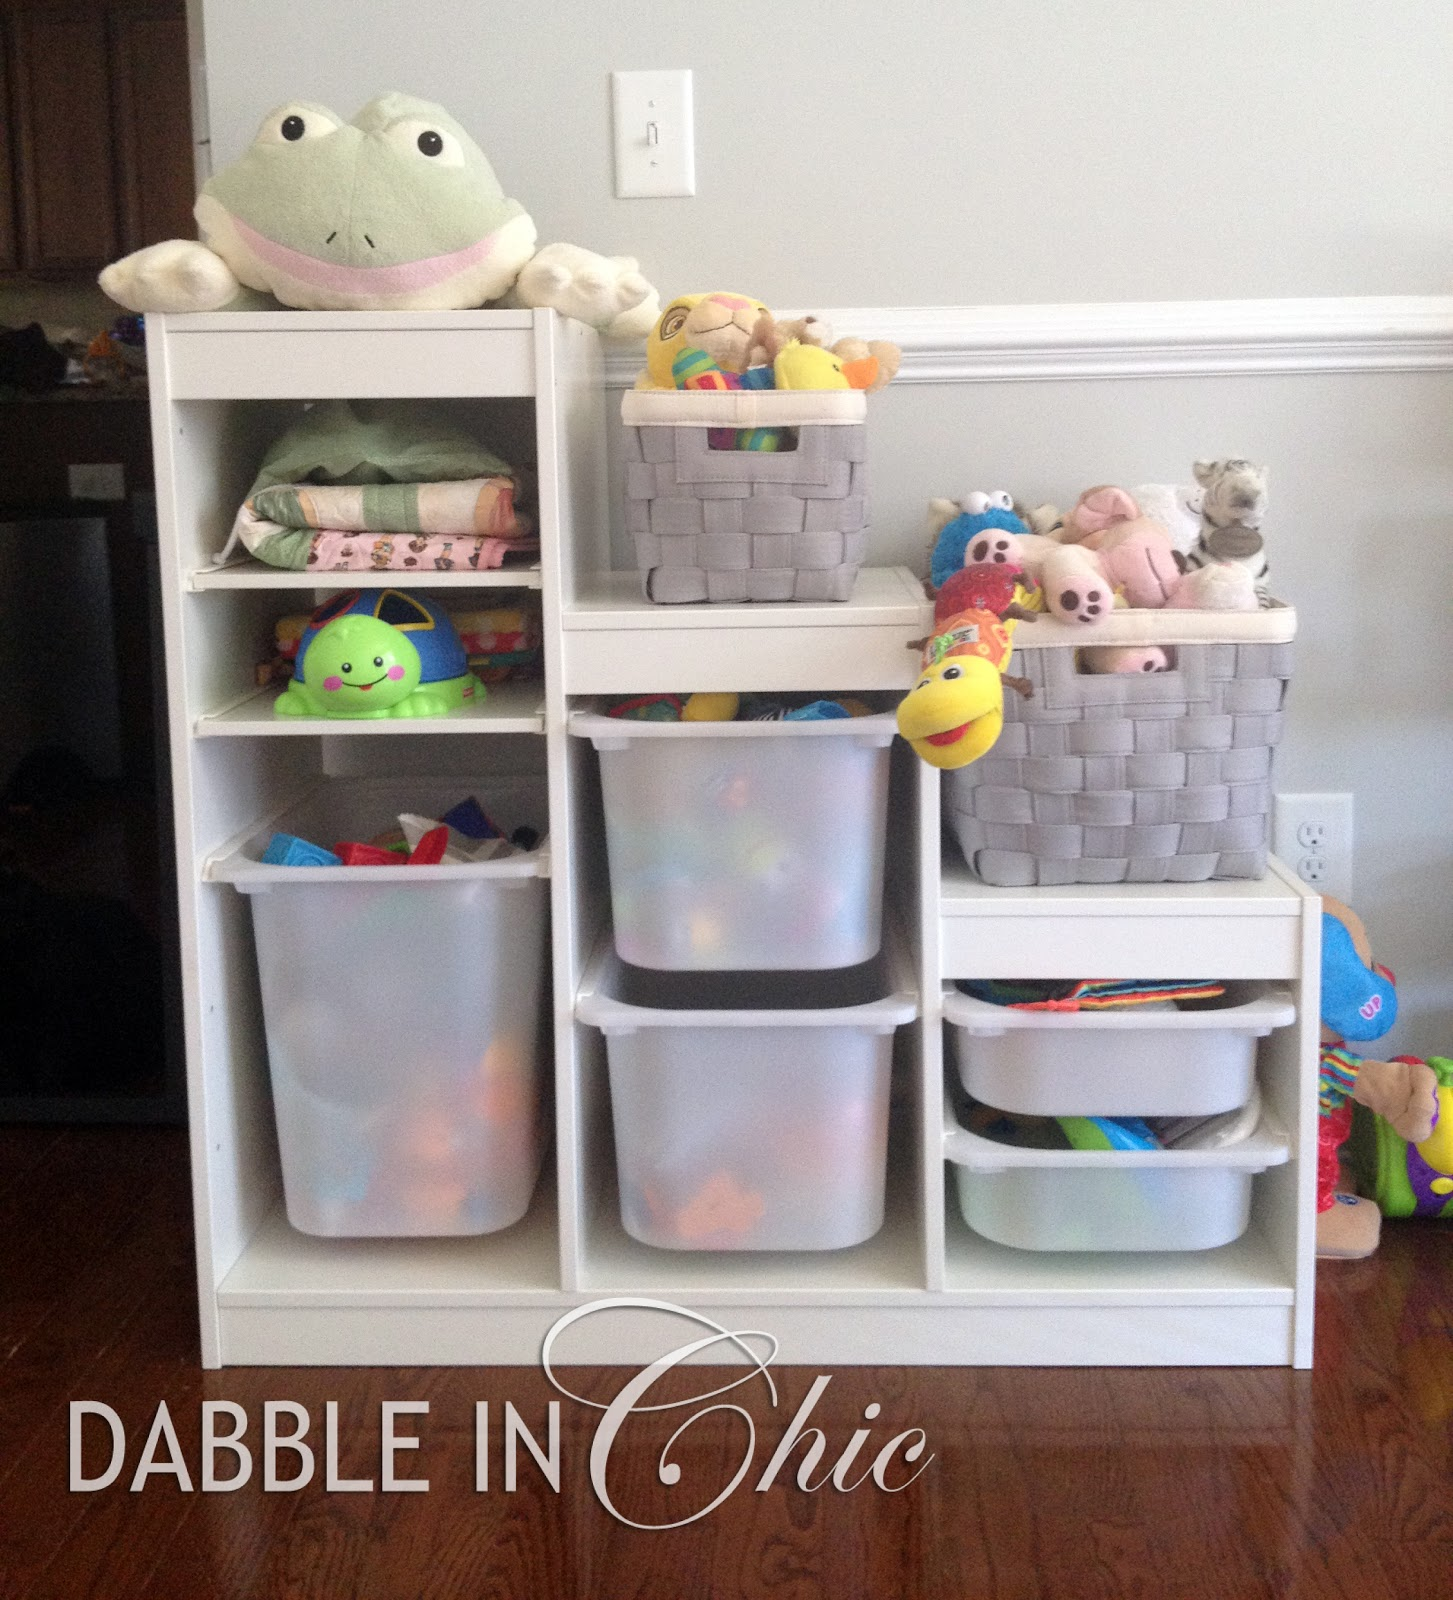 Ikea Toy Storage Dabble In Chic